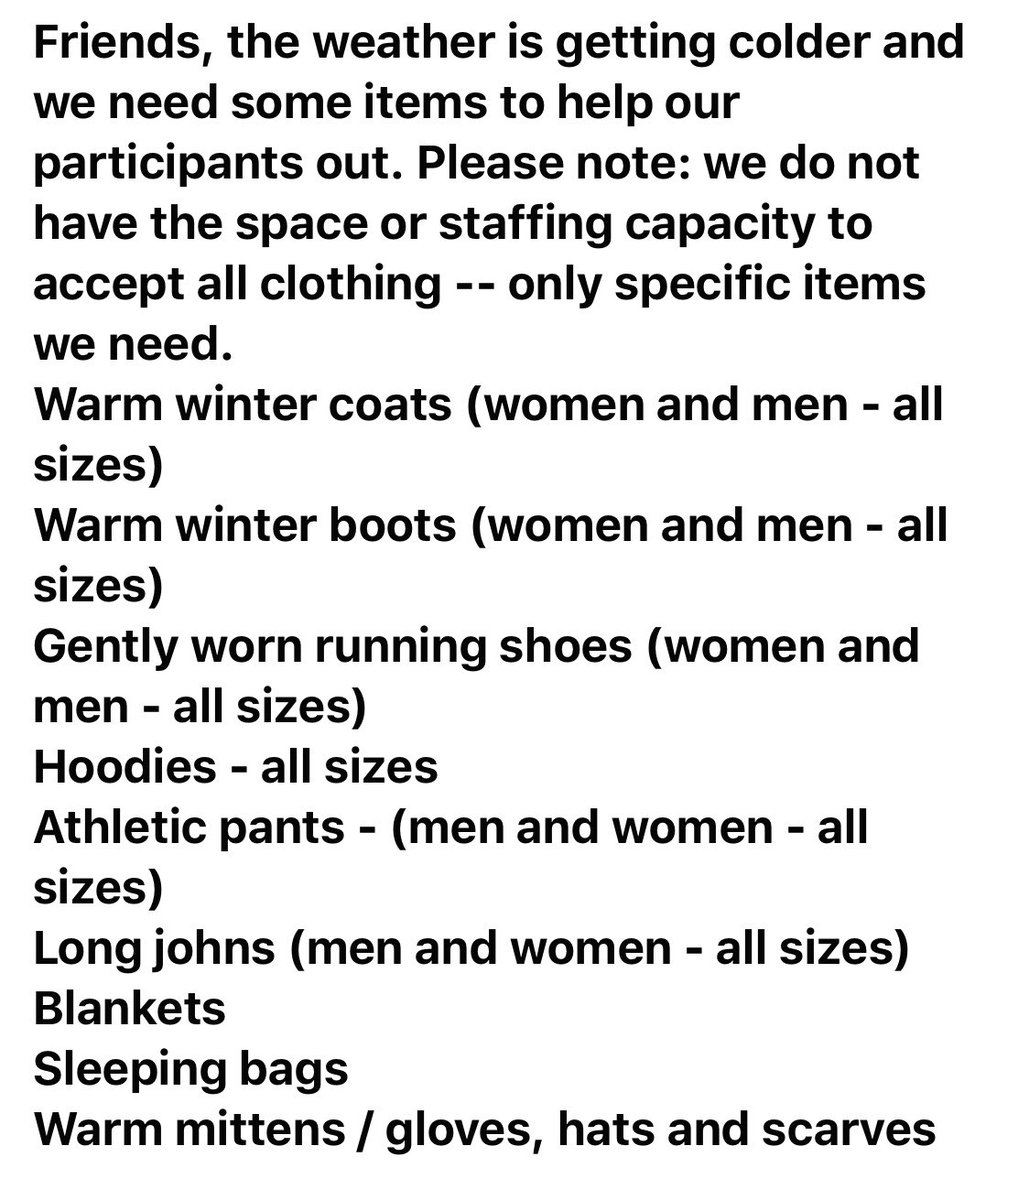 Friends we are in need of warm items for participants of My Sisters' Place and the London Coffee House (women and men). Please know we are grateful for all the ways you support us. #ldnont @CMHAMiddlesex @LdnHomeless